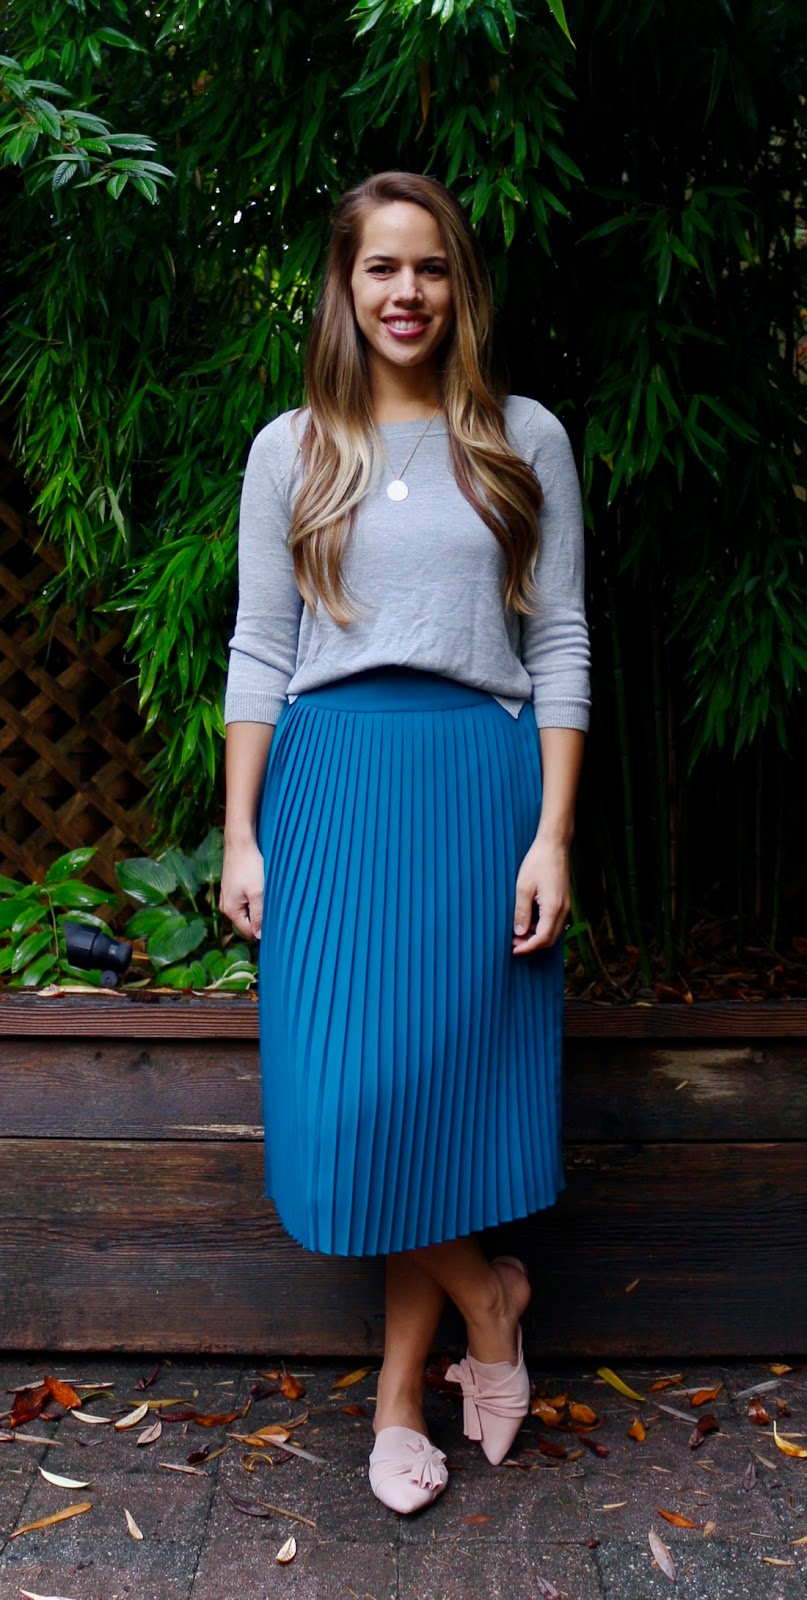 Jules in Flats - Pleated Midi Skirt with Crop Sweater (Business Casual Fall Workwear on a Budget)